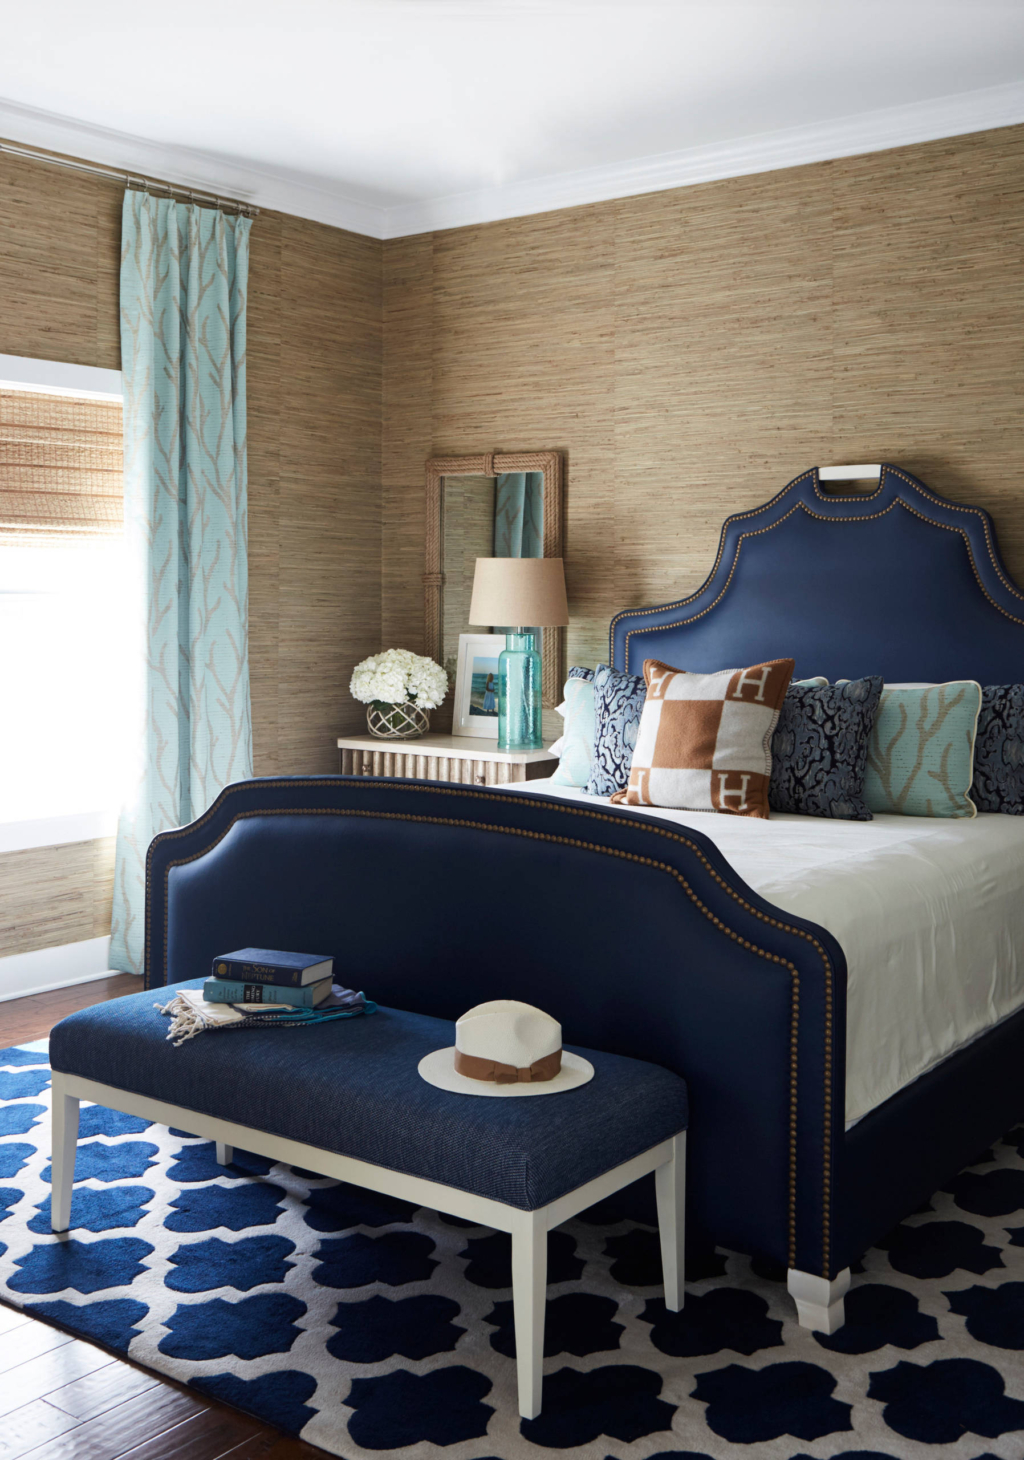 Pictures Of Beautiful Room Designs: Kristin Drohan Collection